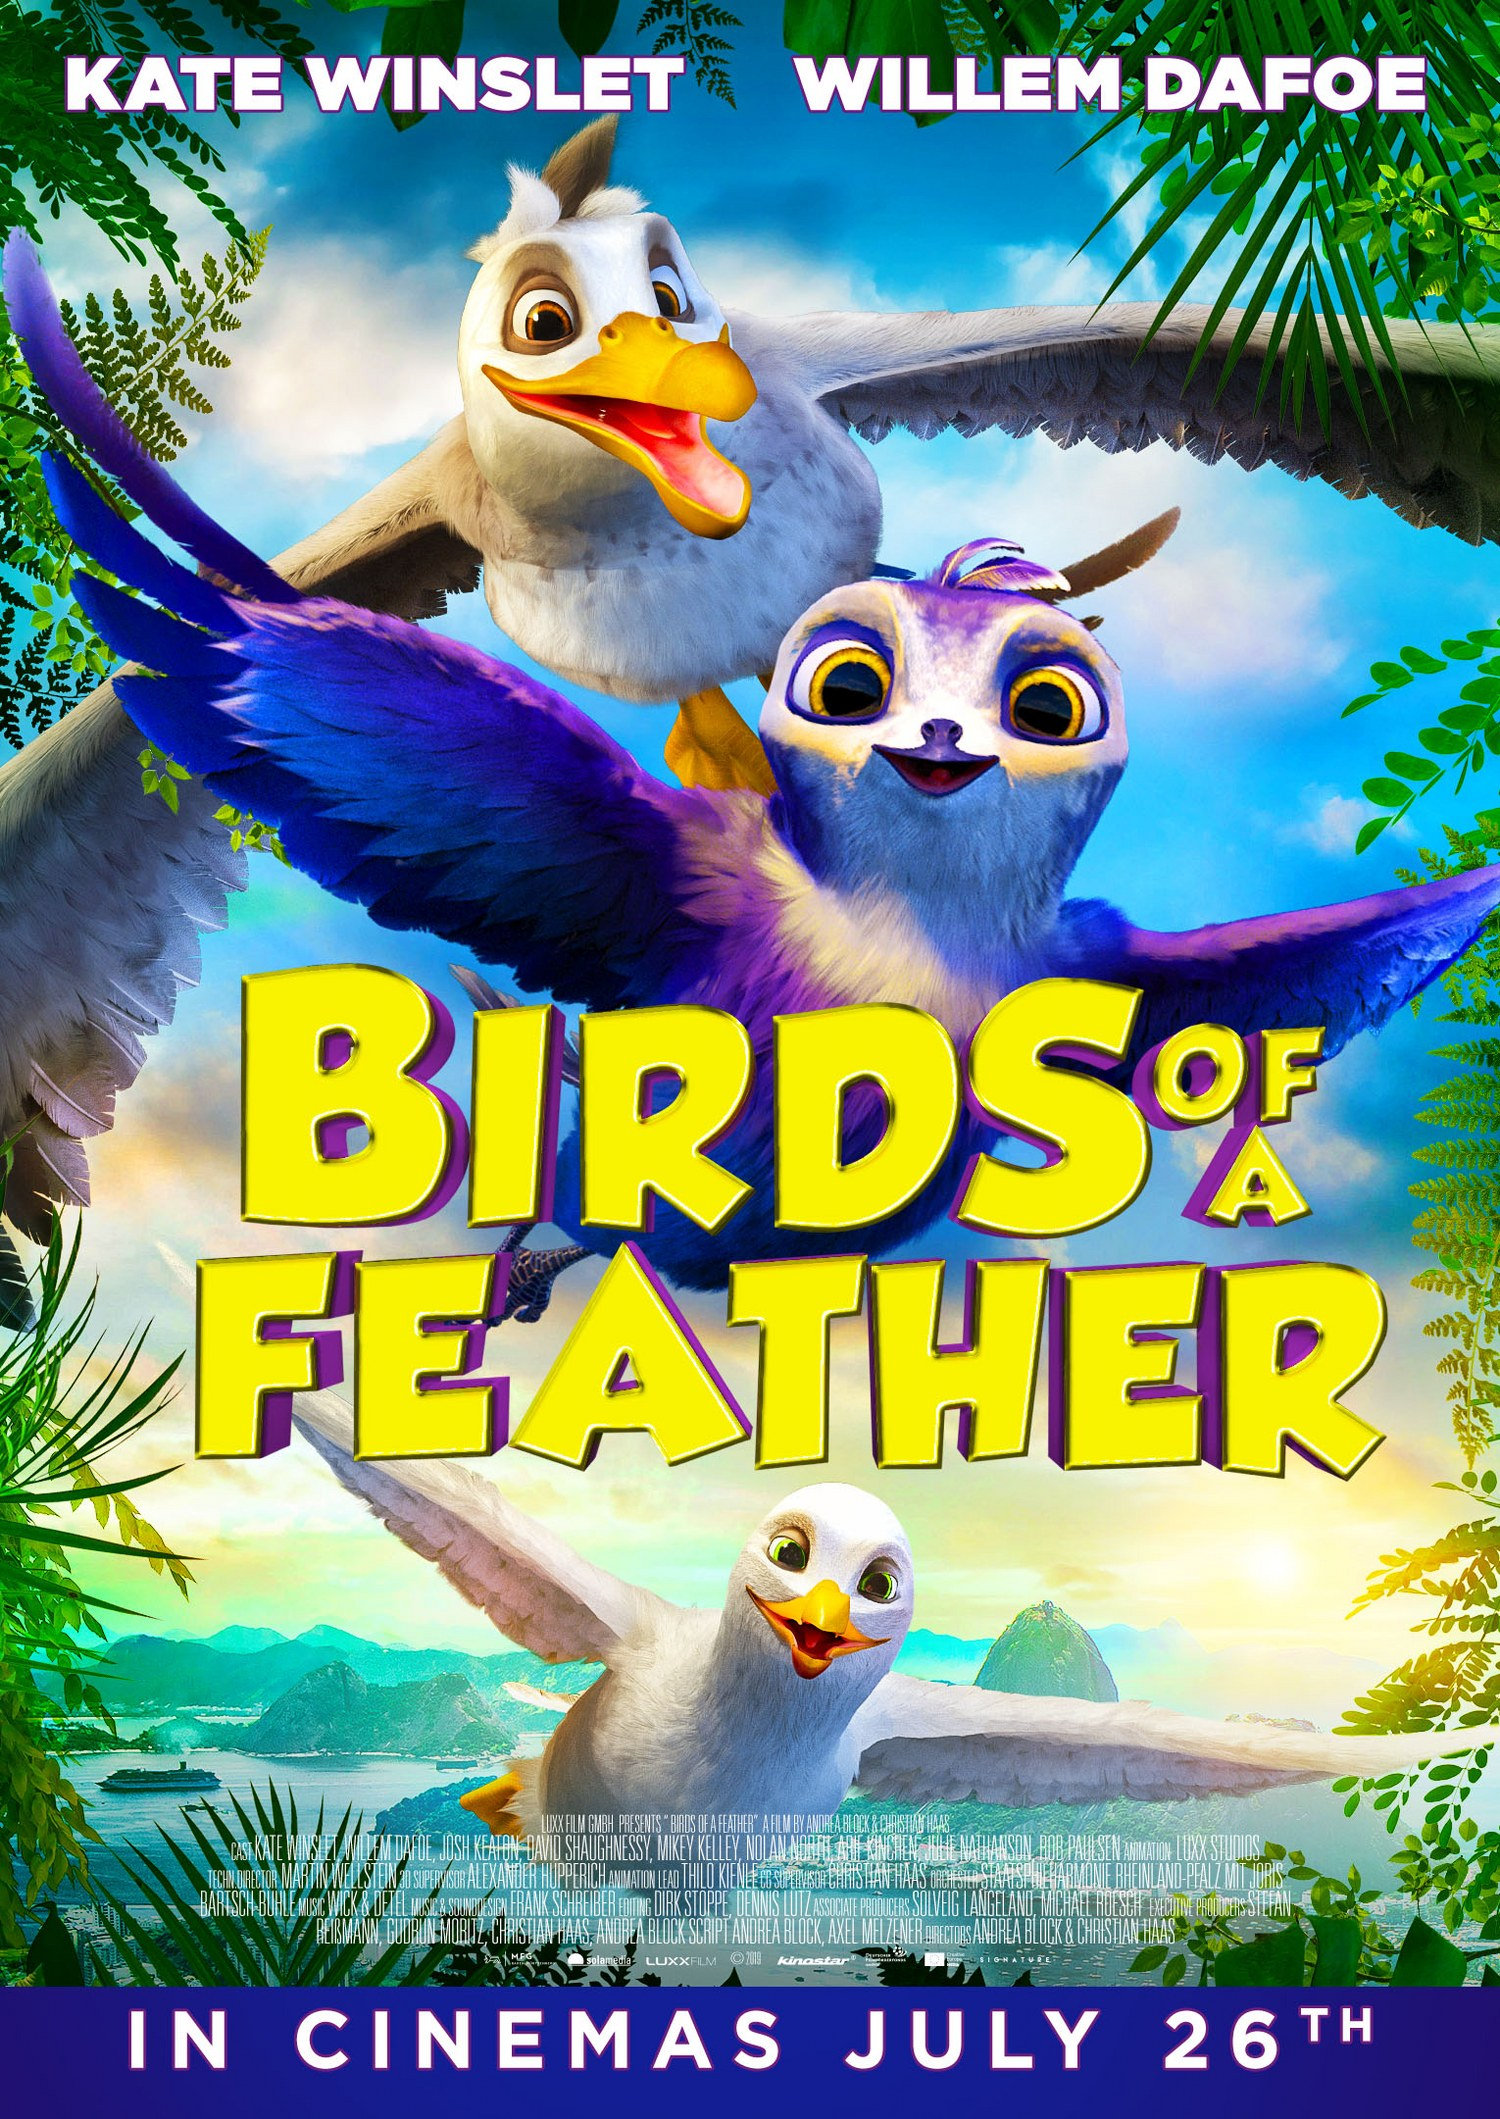 BIRDS_OF_A_FEATHER_POSTER